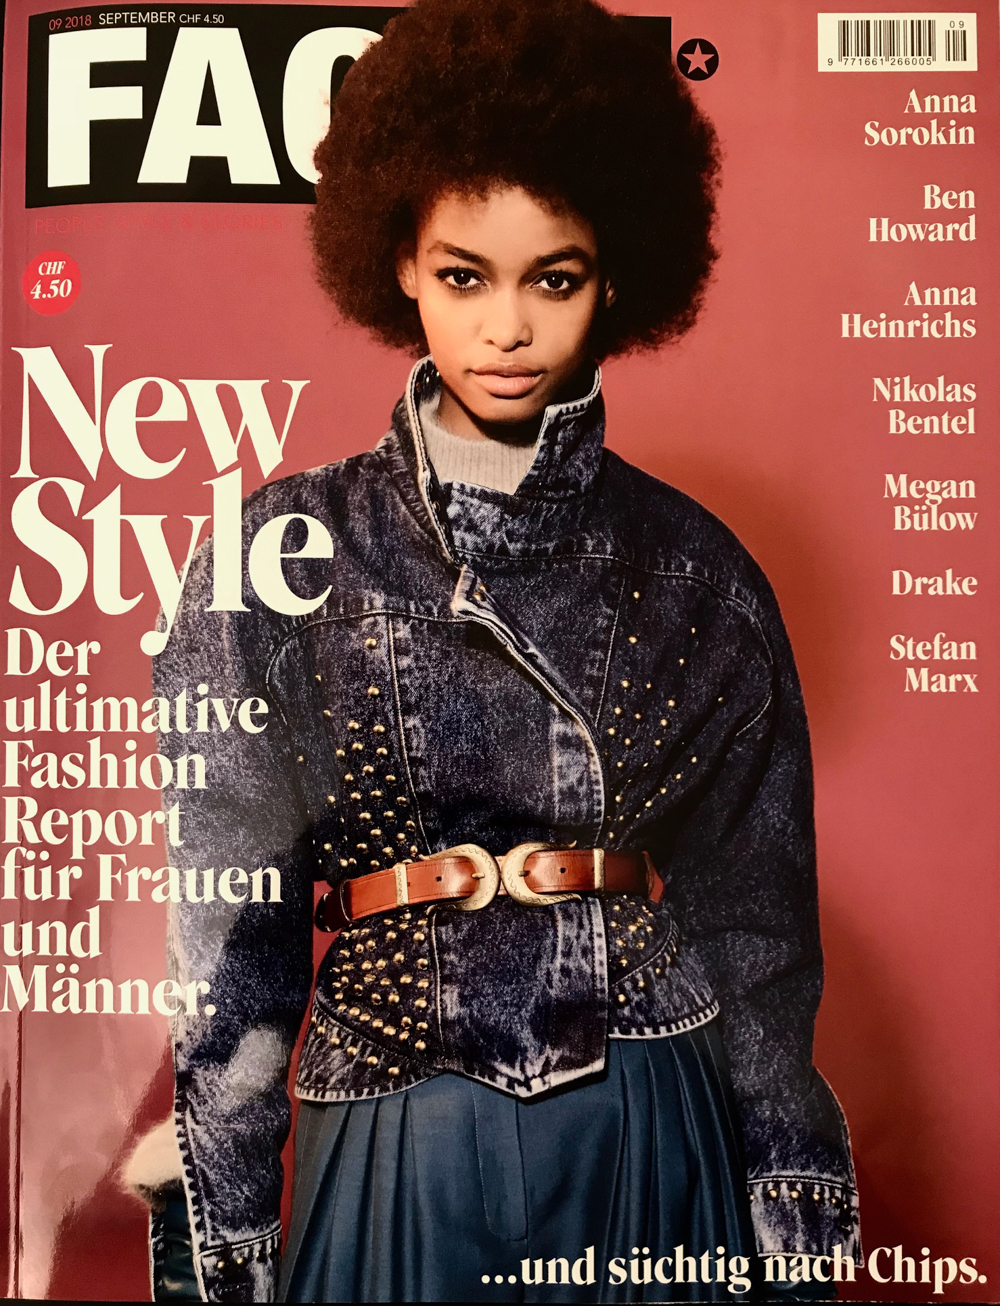 FACES MAGAZIN SEPTEMBER 2018